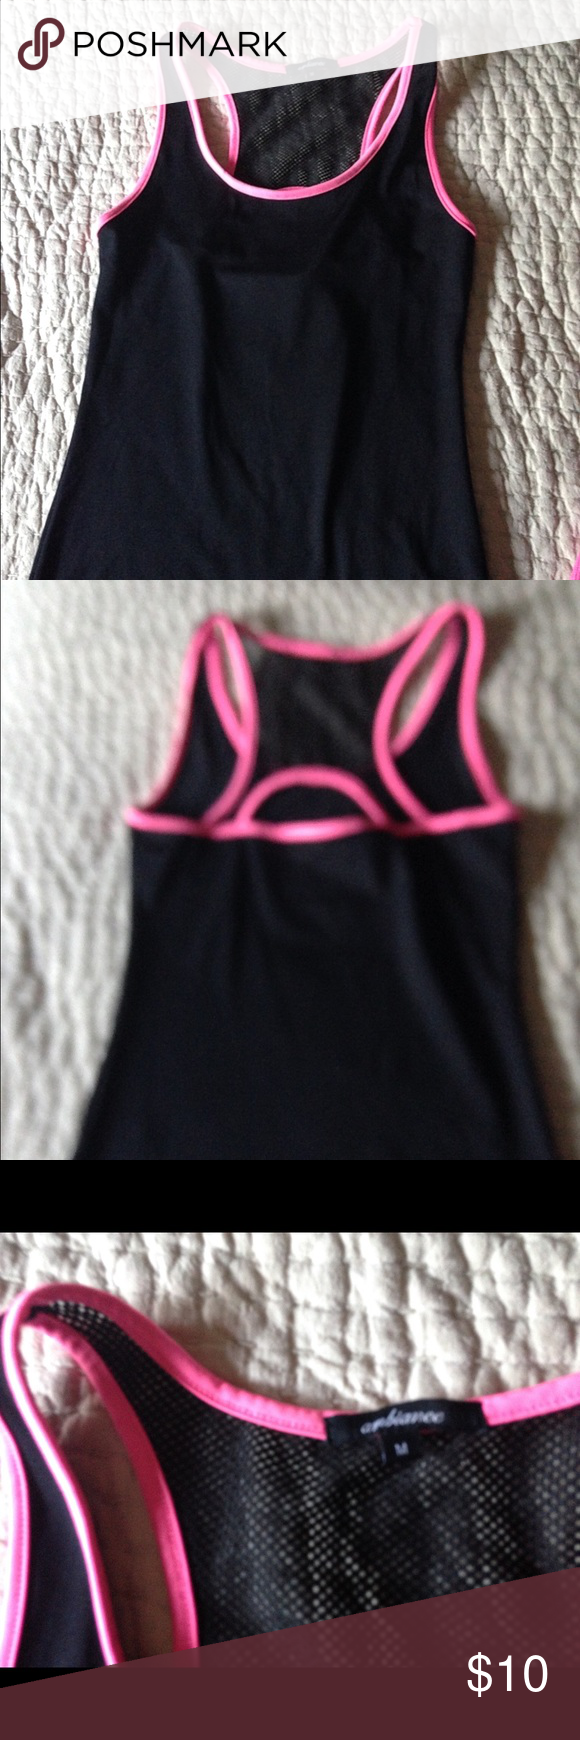 Black & pink tank interesting look at back design Some areas mesh no tags never worn Ambiance Tops Tank Tops